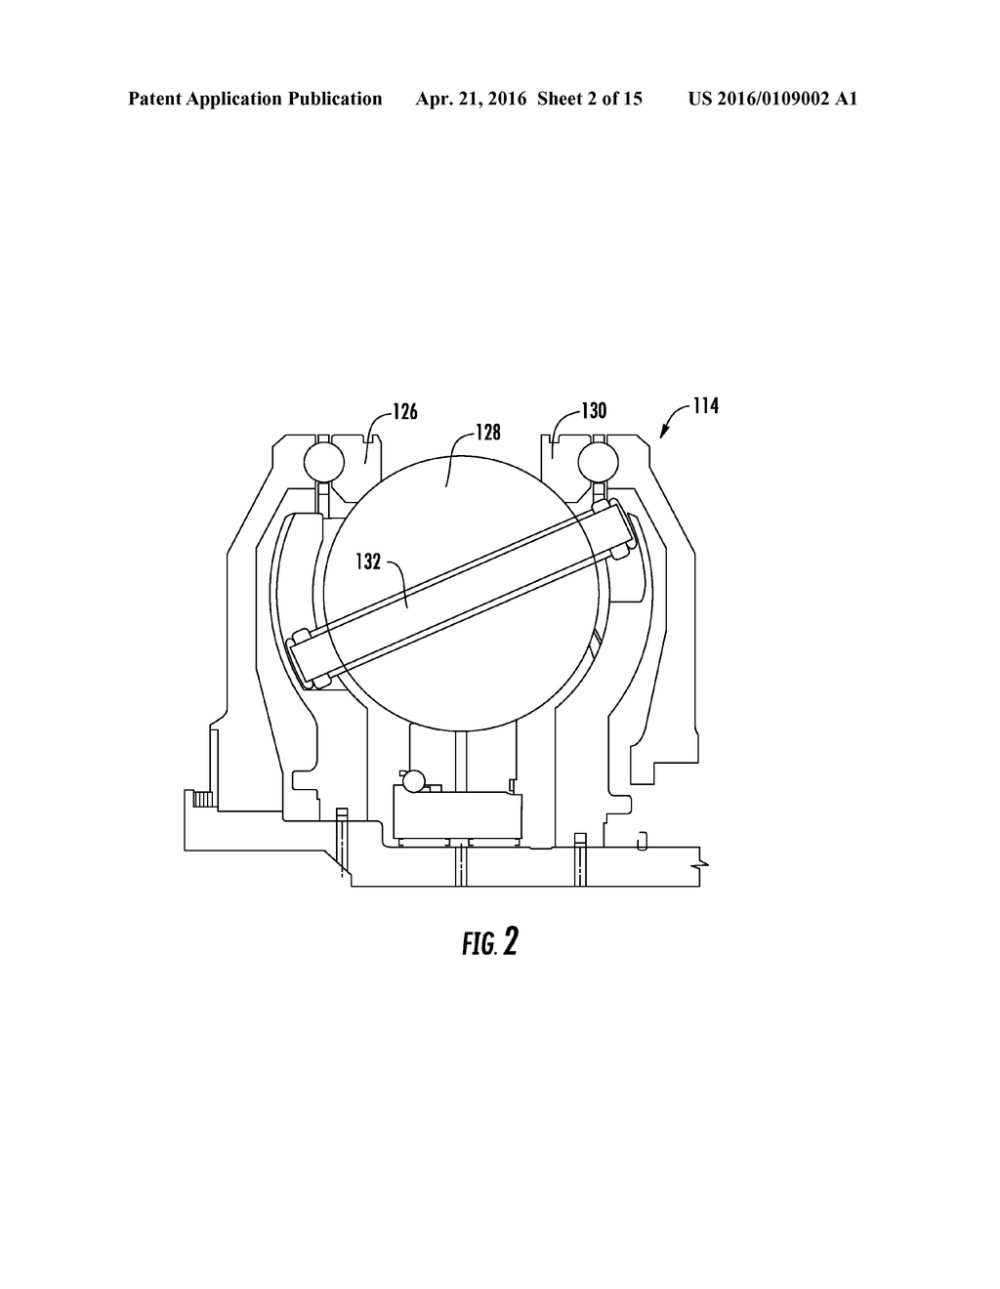 medium resolution of split power infinitely variable transmission architecture incorporating a planetary type ball variator with low part count diagram schematic and image